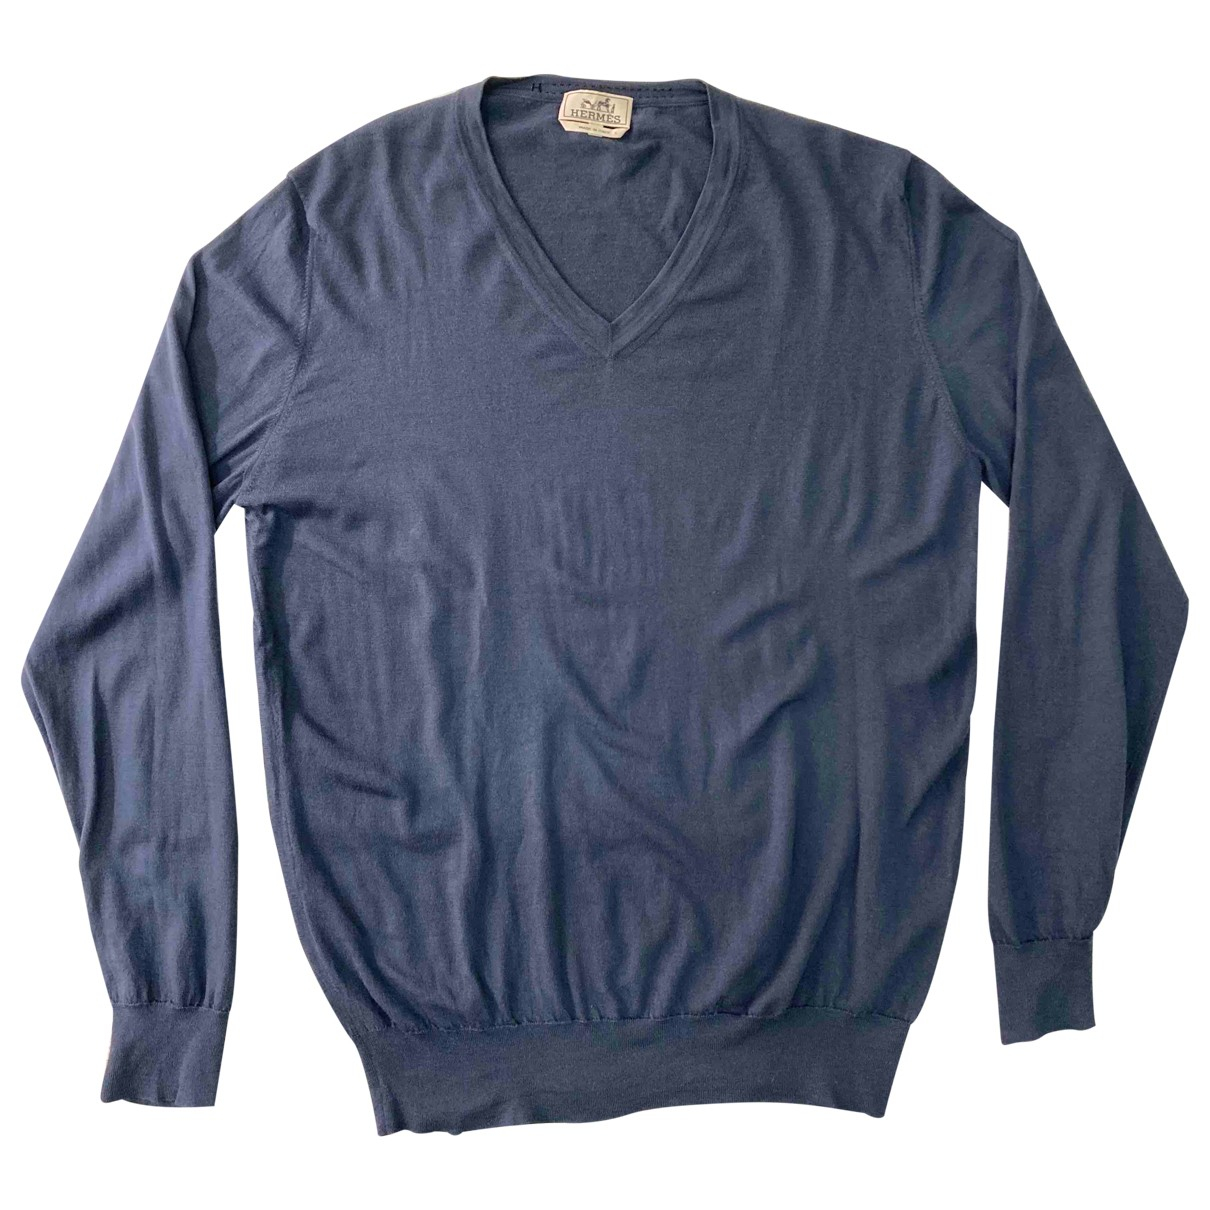 Hermès \N Blue Cashmere Knitwear & Sweatshirts for Men XXXL International